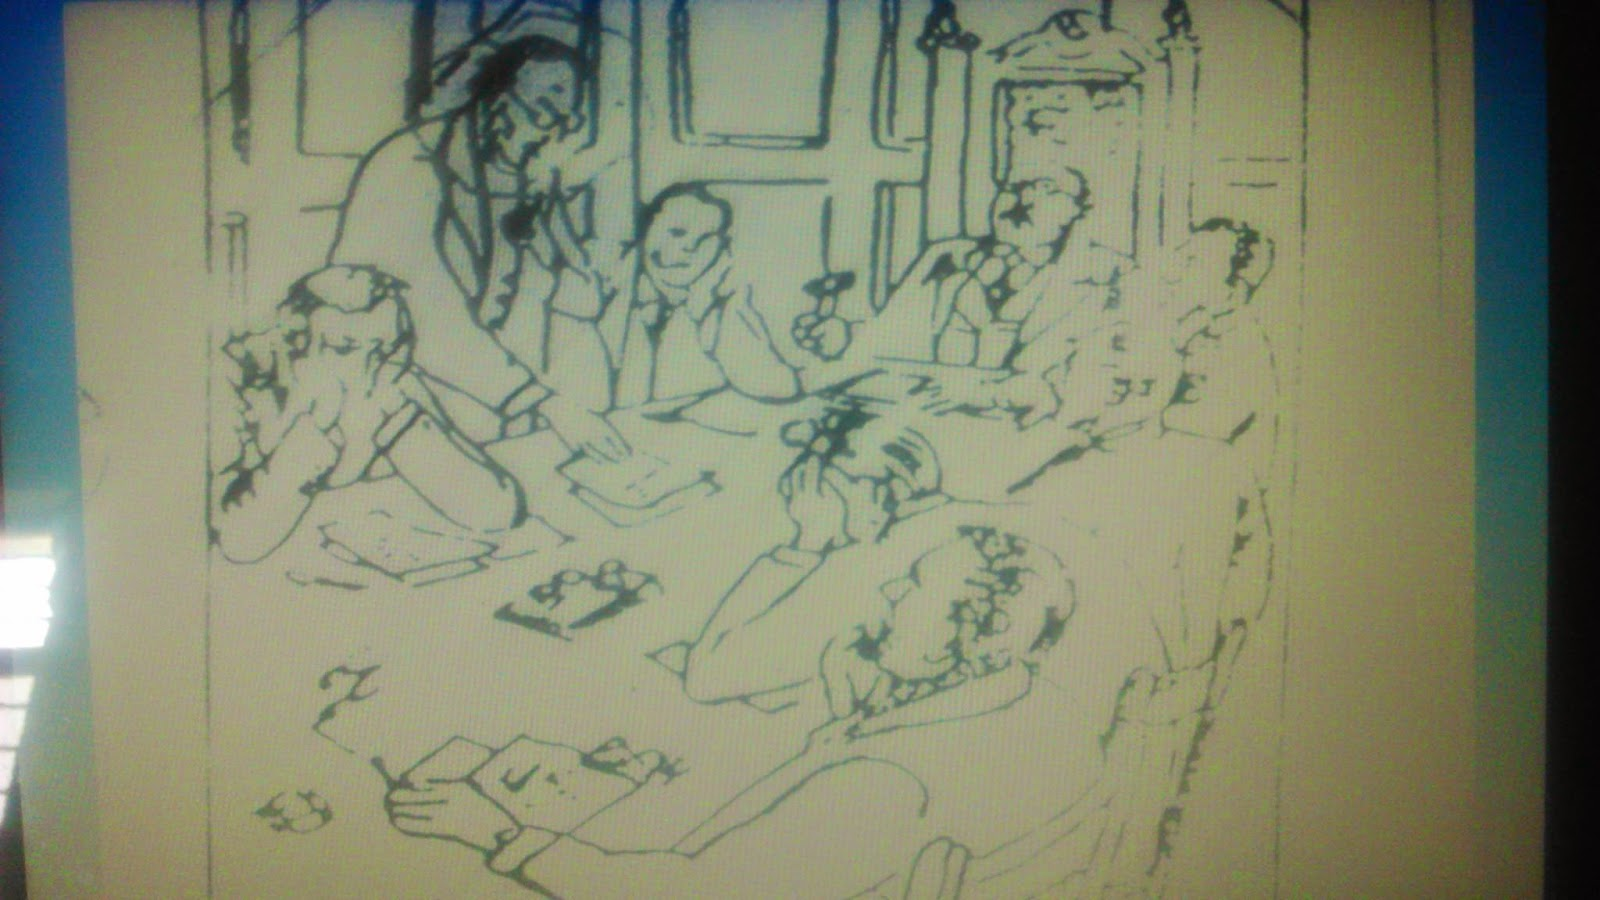 Sample TAT image of some person sitting around table with Story